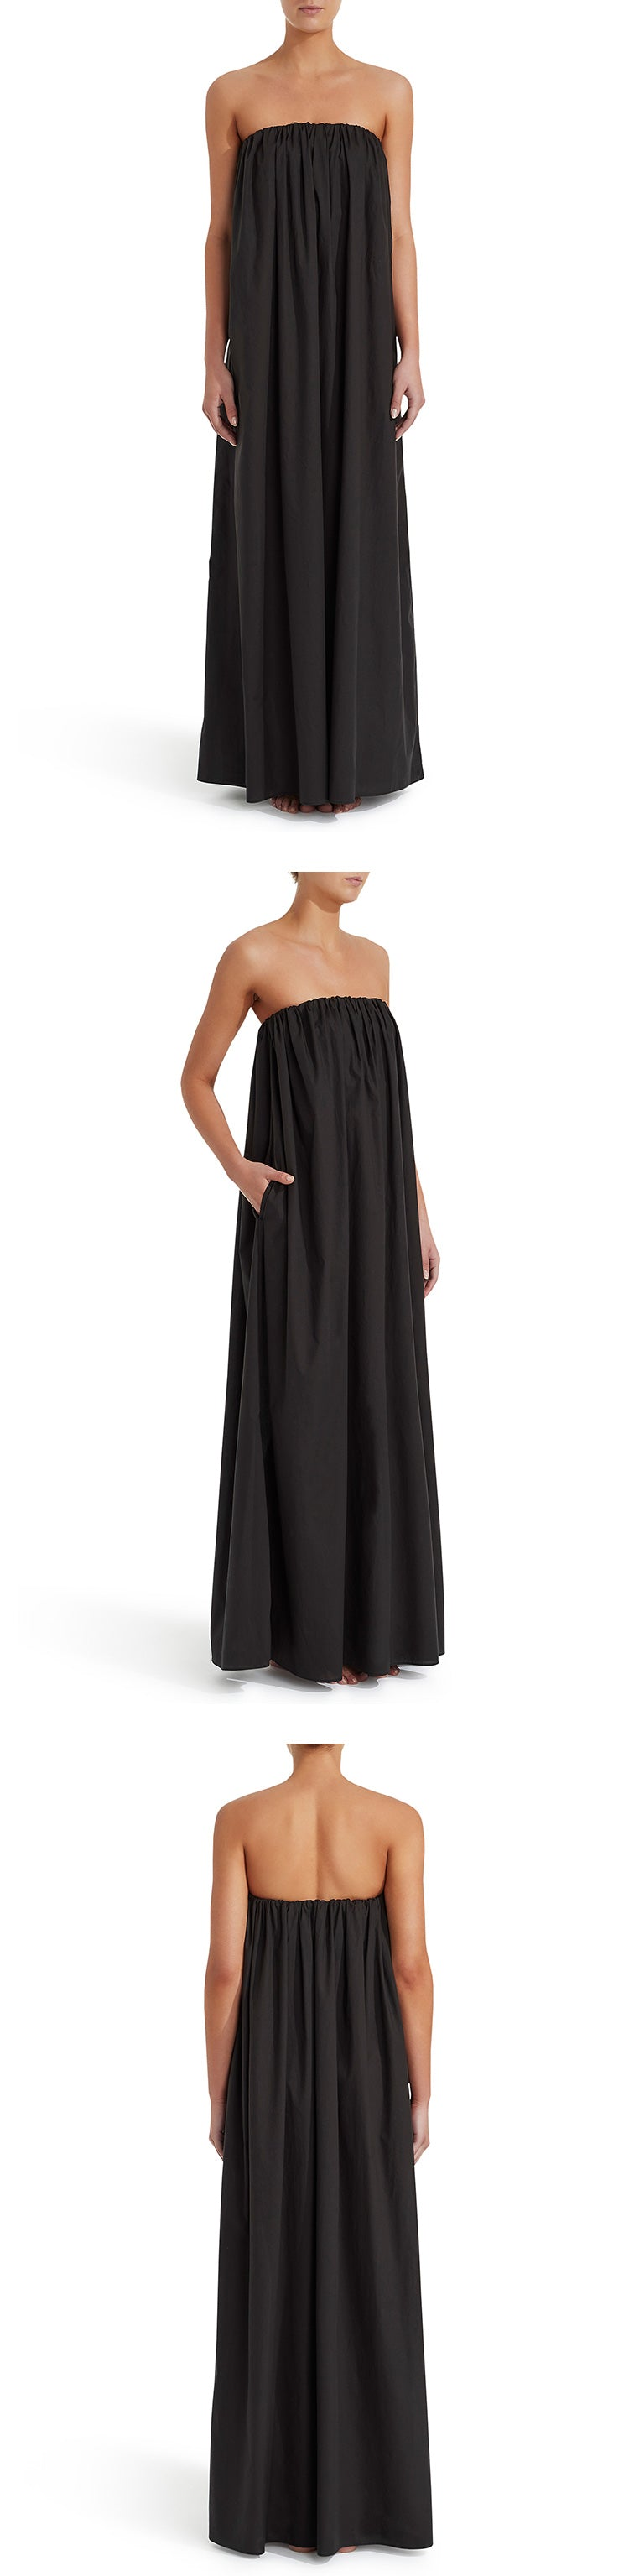 The Strapless Voluminous Dress